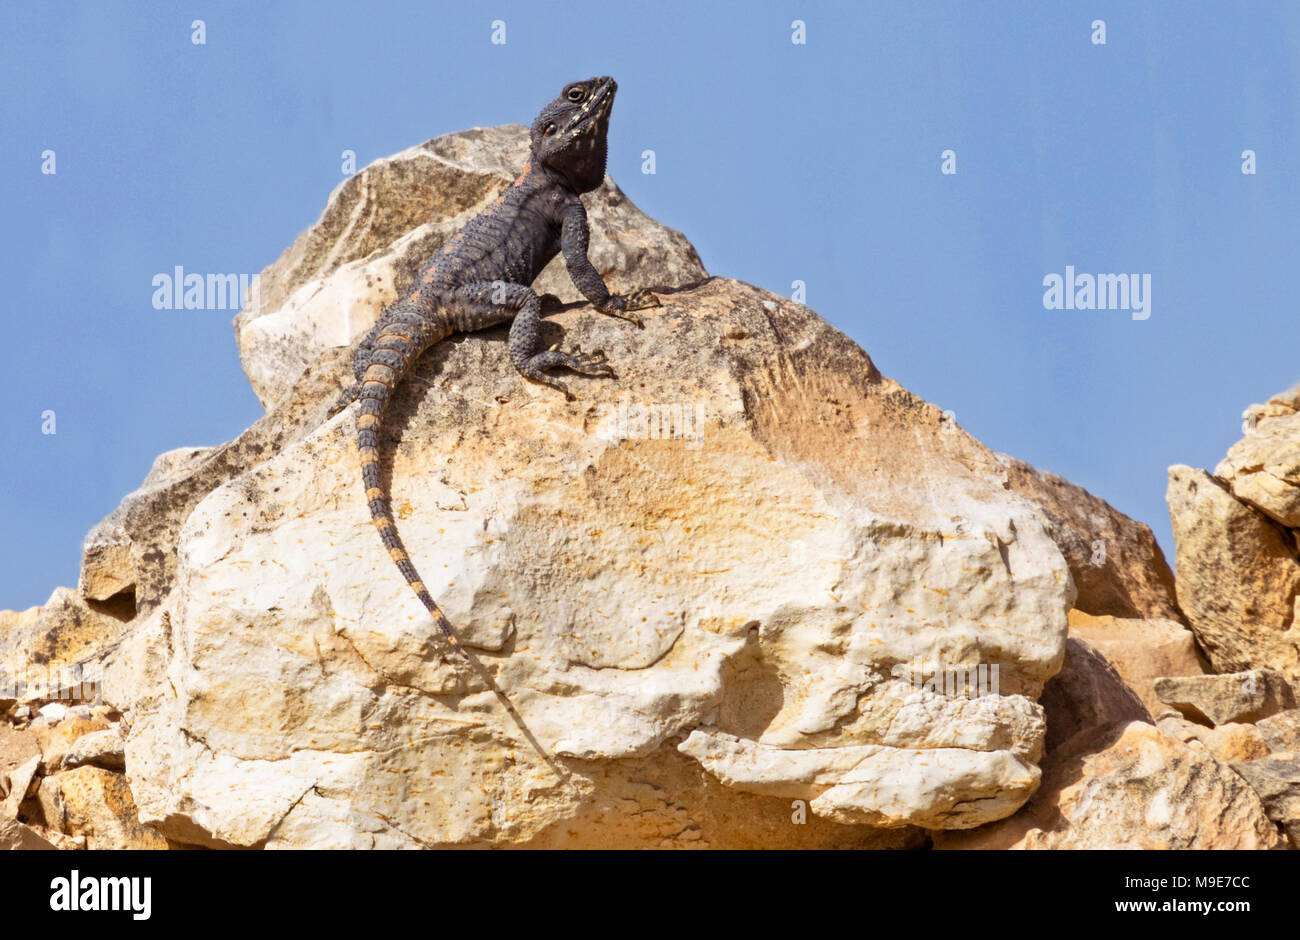 a roughtail rock agama lizard on a boulder displaying mating behavior Stock Photo